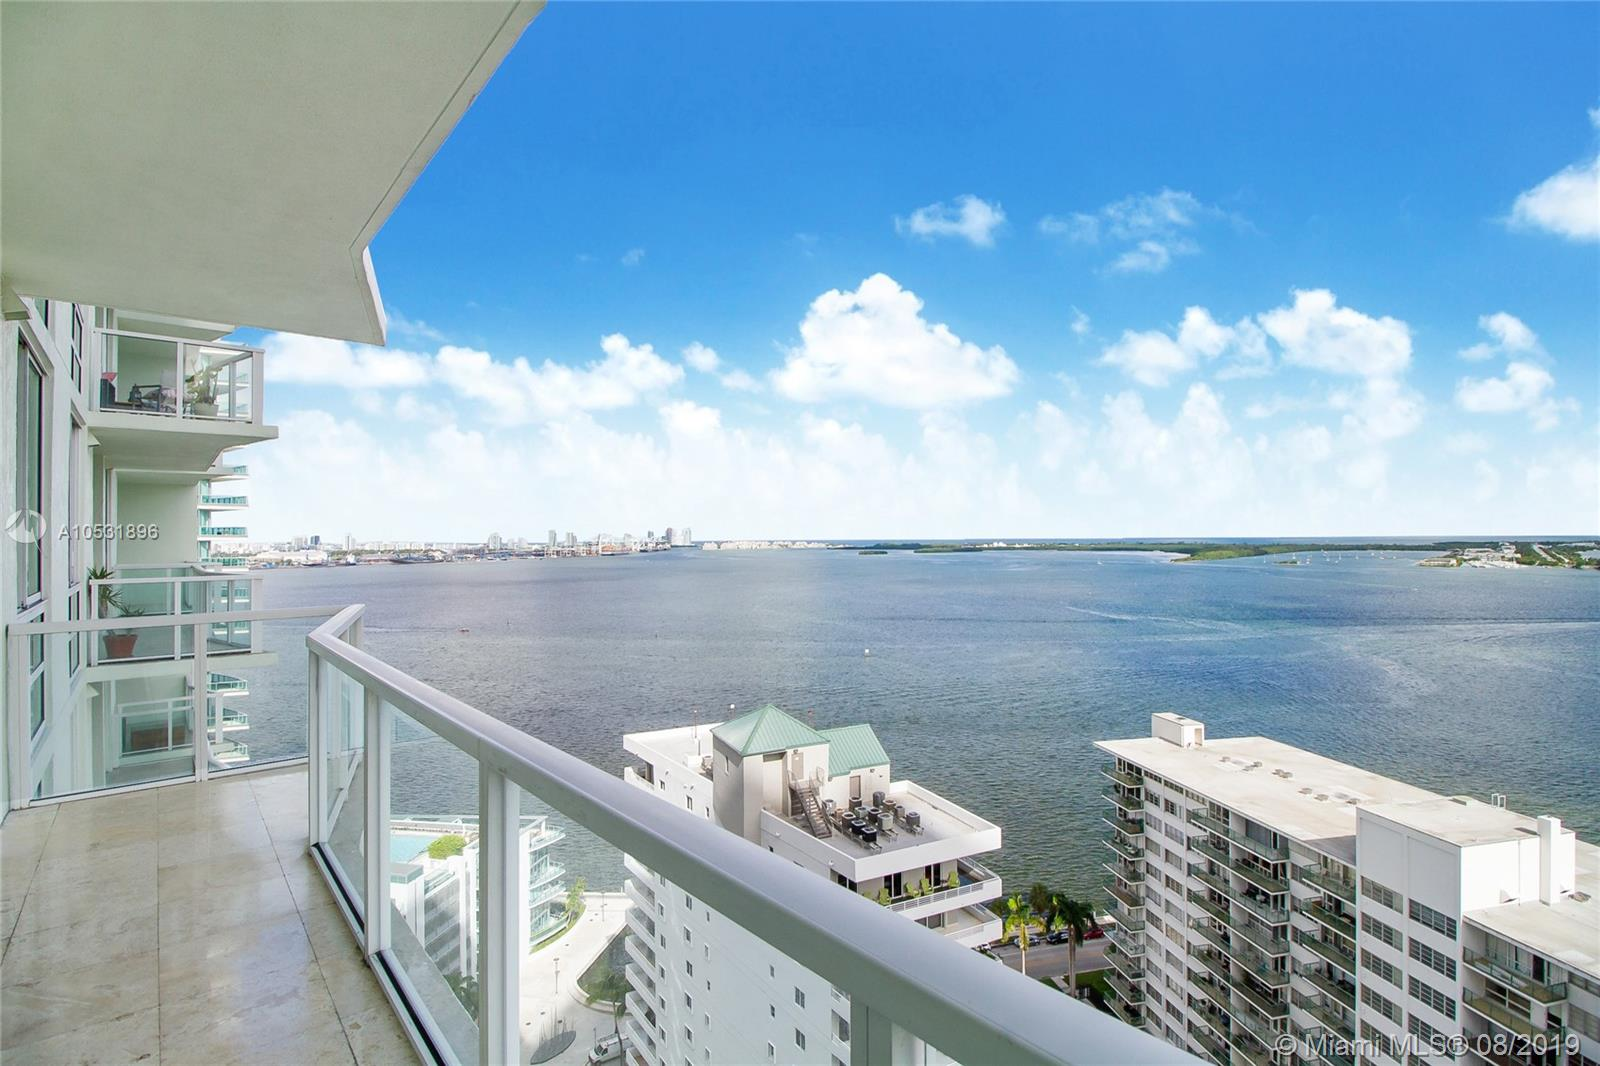 218 SE 14th St, Miami, Fl 33131, Emerald at Brickell #2305, Brickell, Miami A10531896 image #2